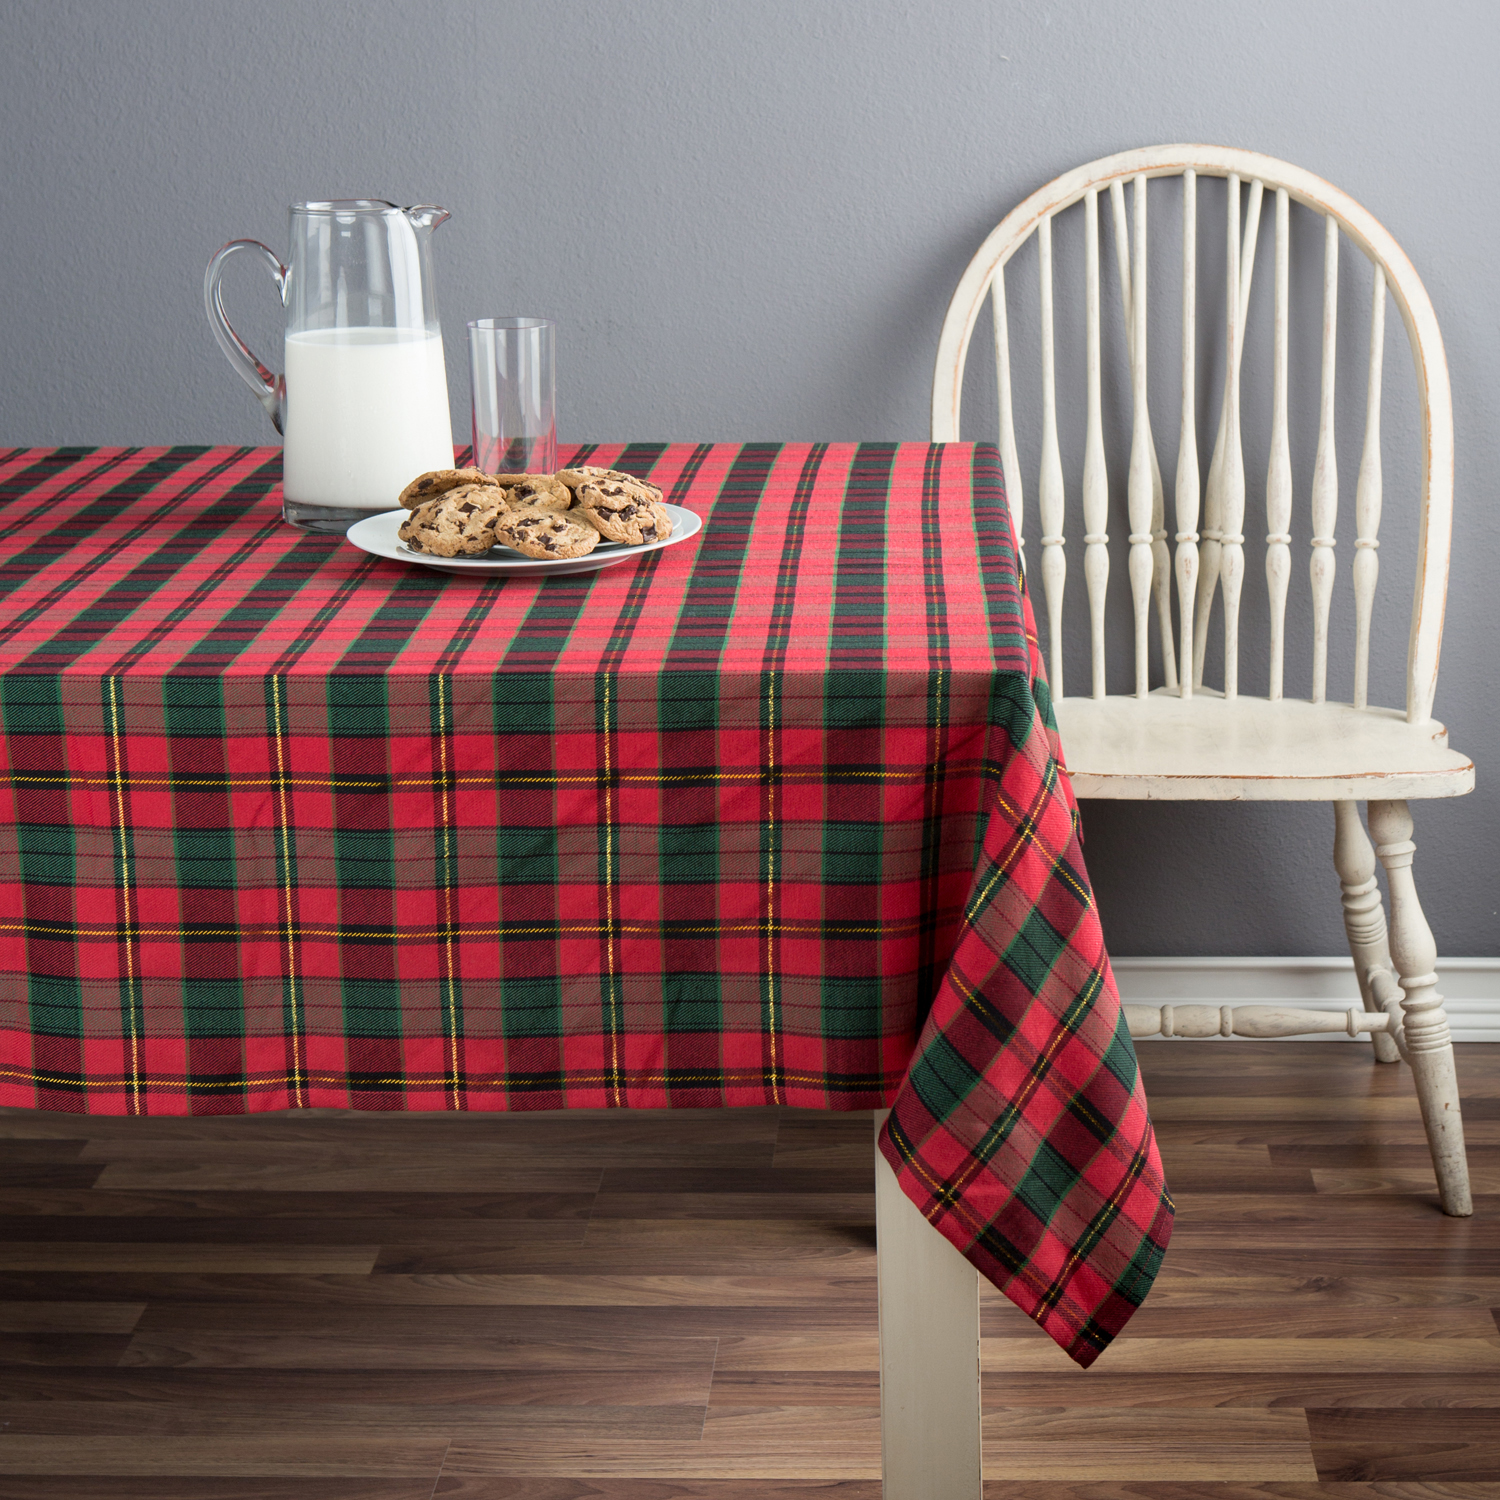 Better Homes U0026 Gardens Dublin Plaid Red And Green Tablecloth, Cotton  Polyester Blend